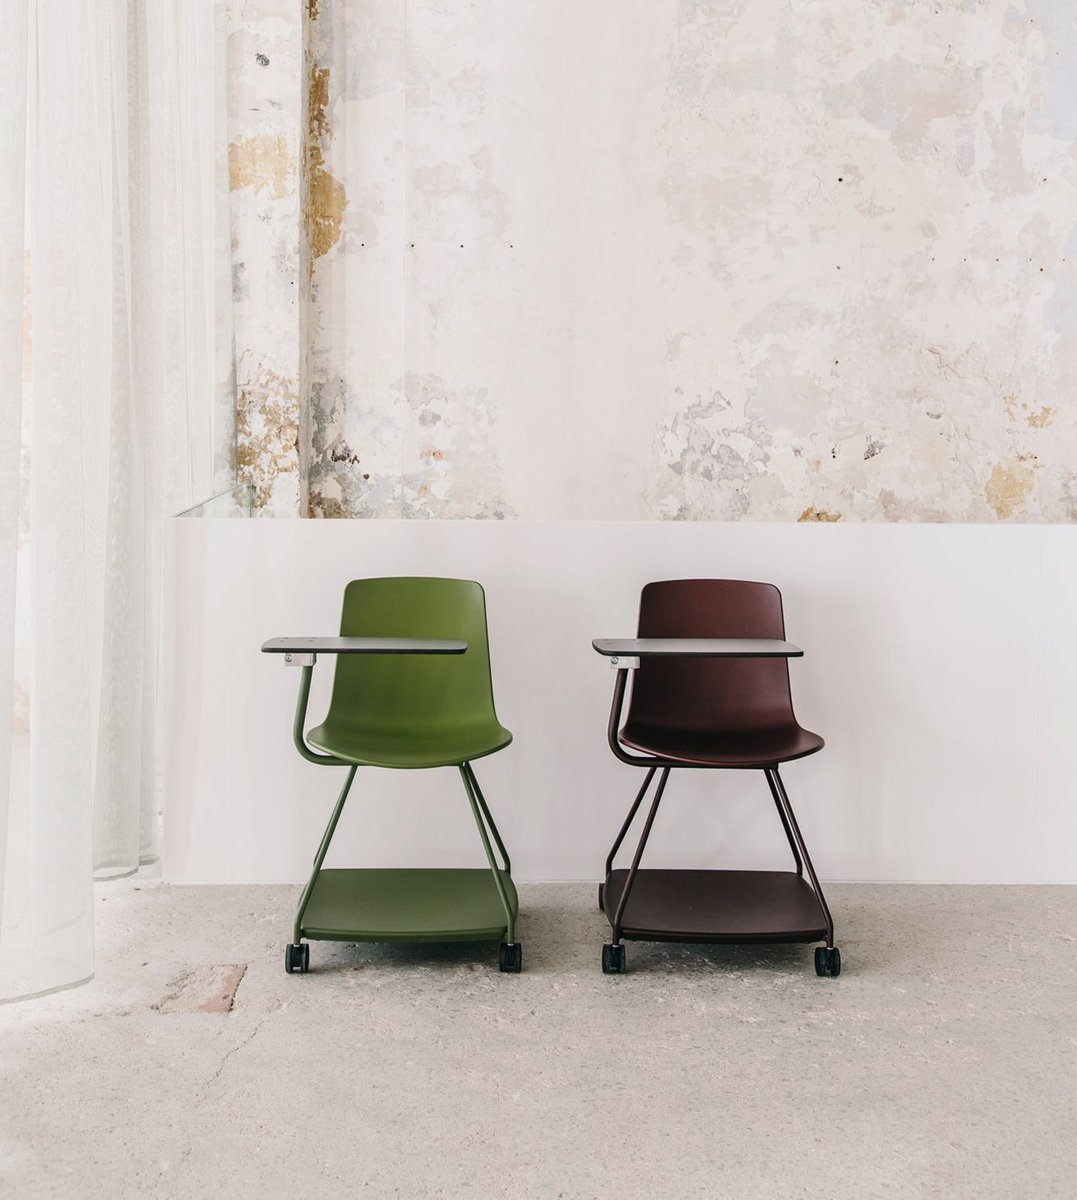 enea on twitter new we introduce the new tray chair designed by rh twitter com tray care tray carrot cake